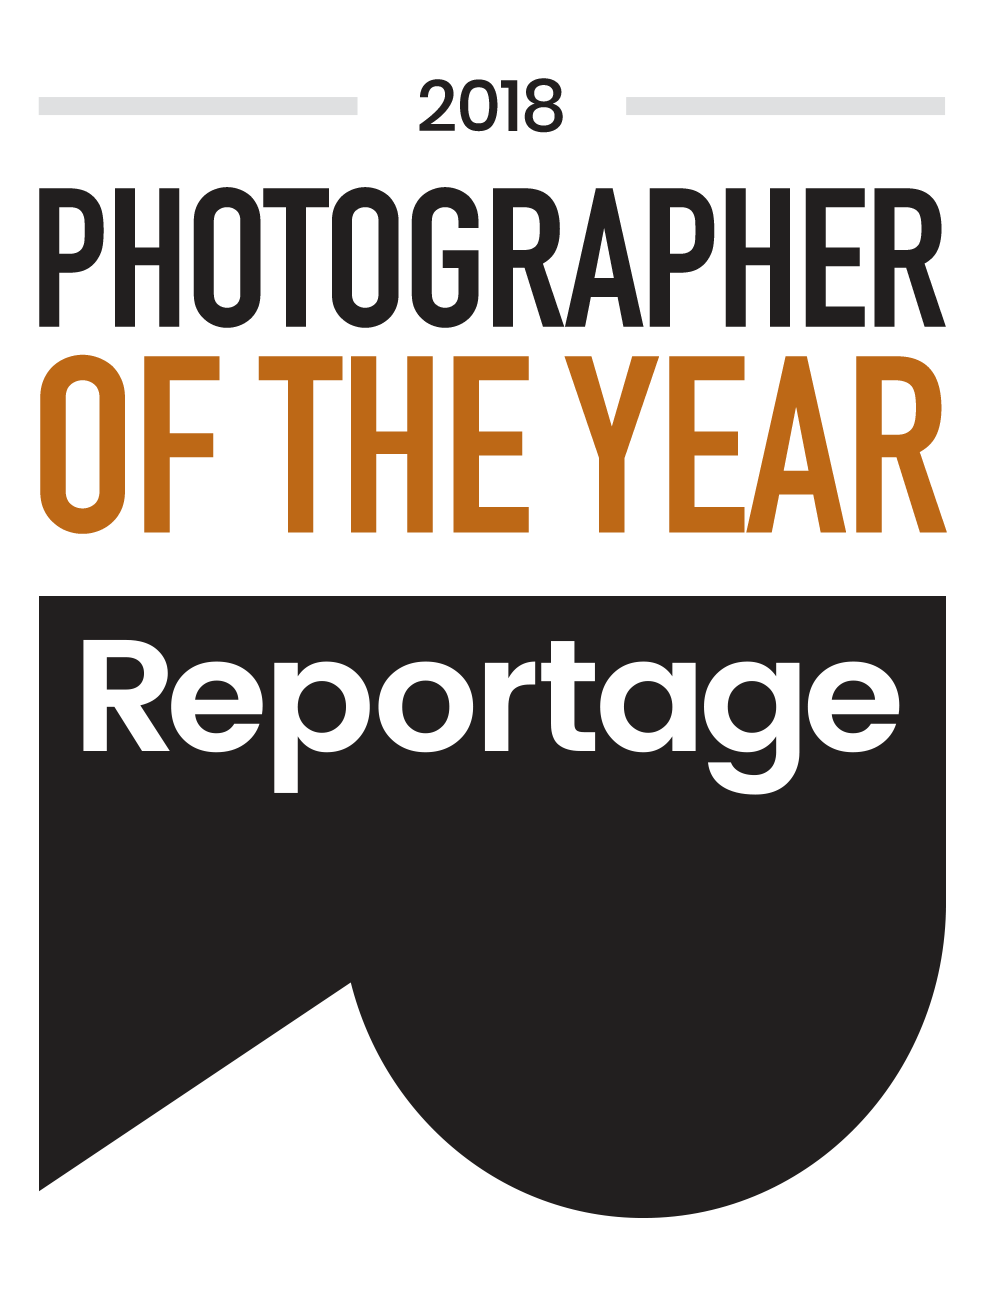 reportage-photographer-of-the-year-2018-png